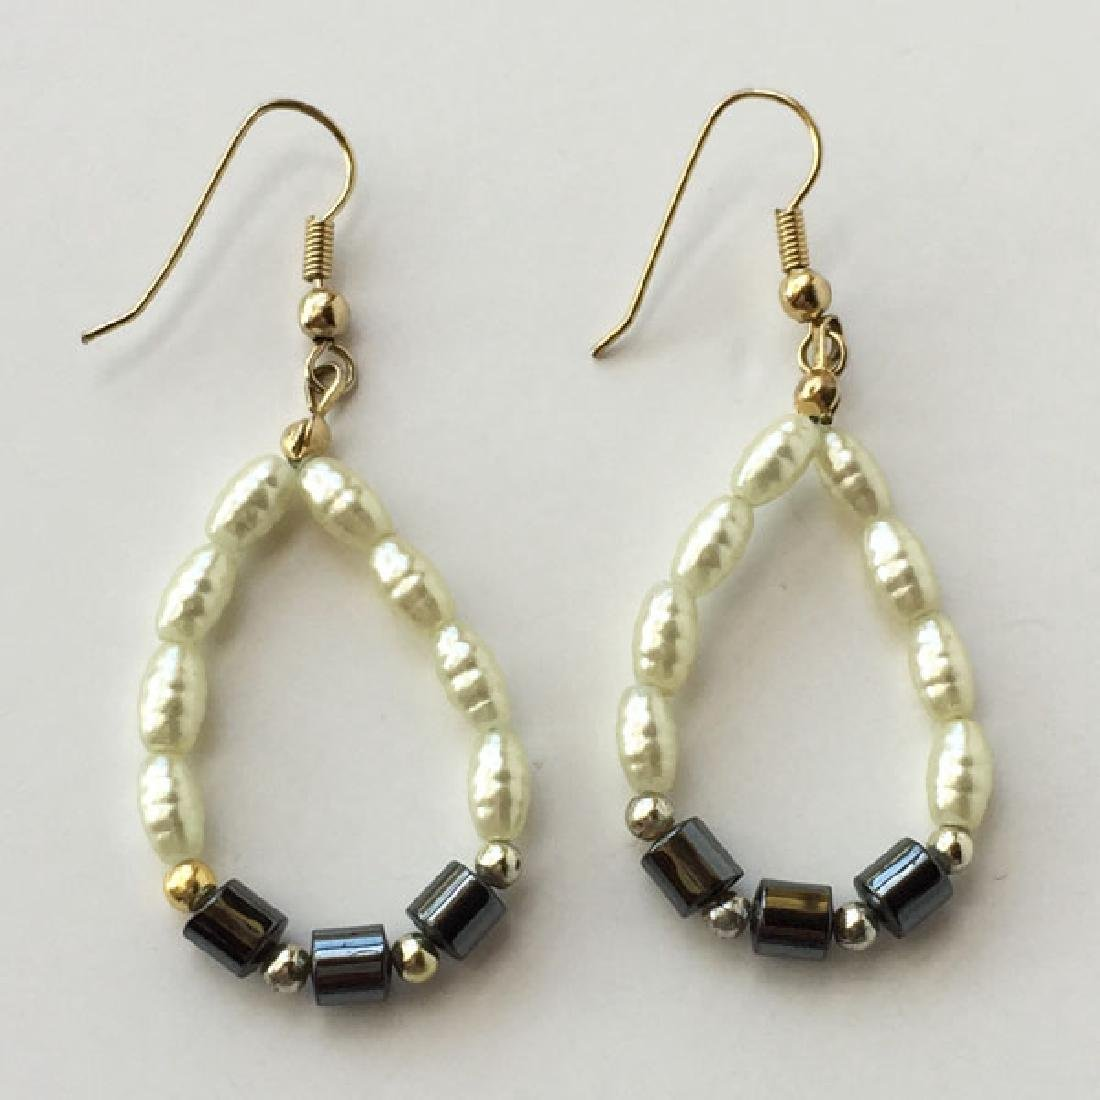 Gold plated fish hook earrings with hematite beads and